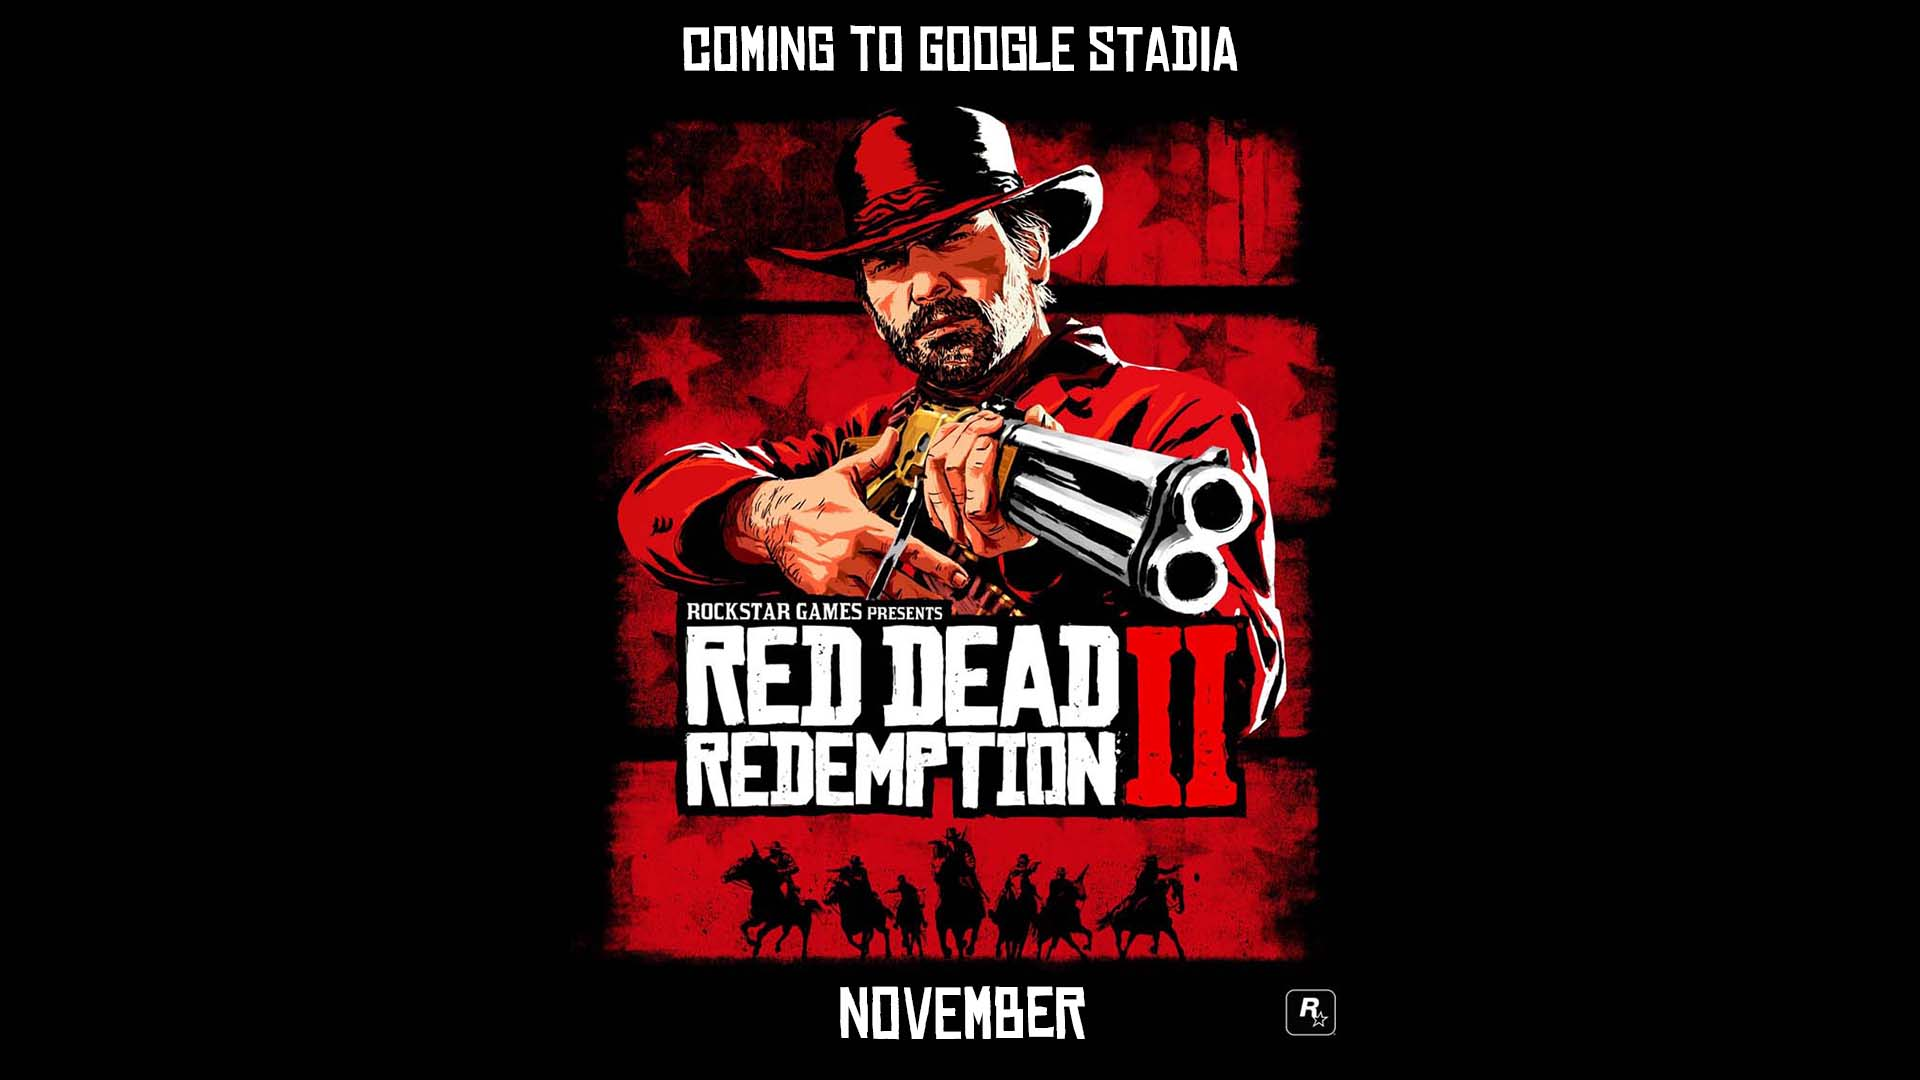 Red Dead Redemption II Google Stadia